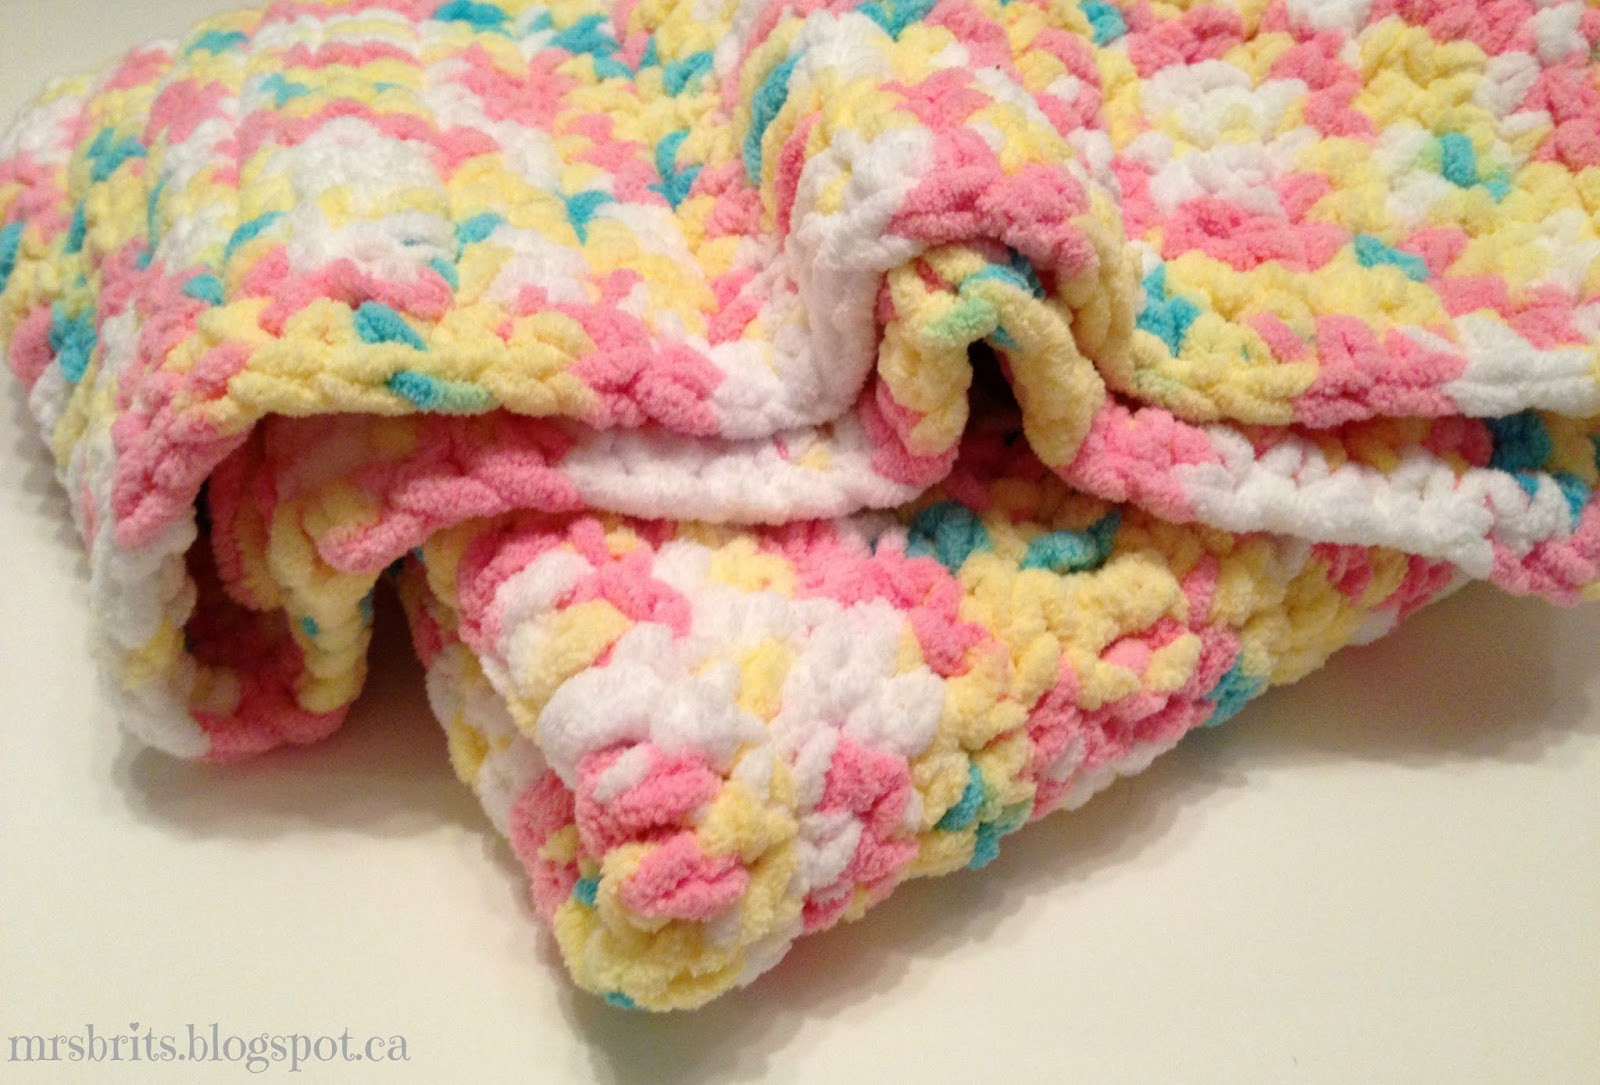 Yarn for Crochet Blanket Unique Mrsbrits Sweet and Chunky Baby Afghan Crochet Pattern Of Amazing 41 Photos Yarn for Crochet Blanket